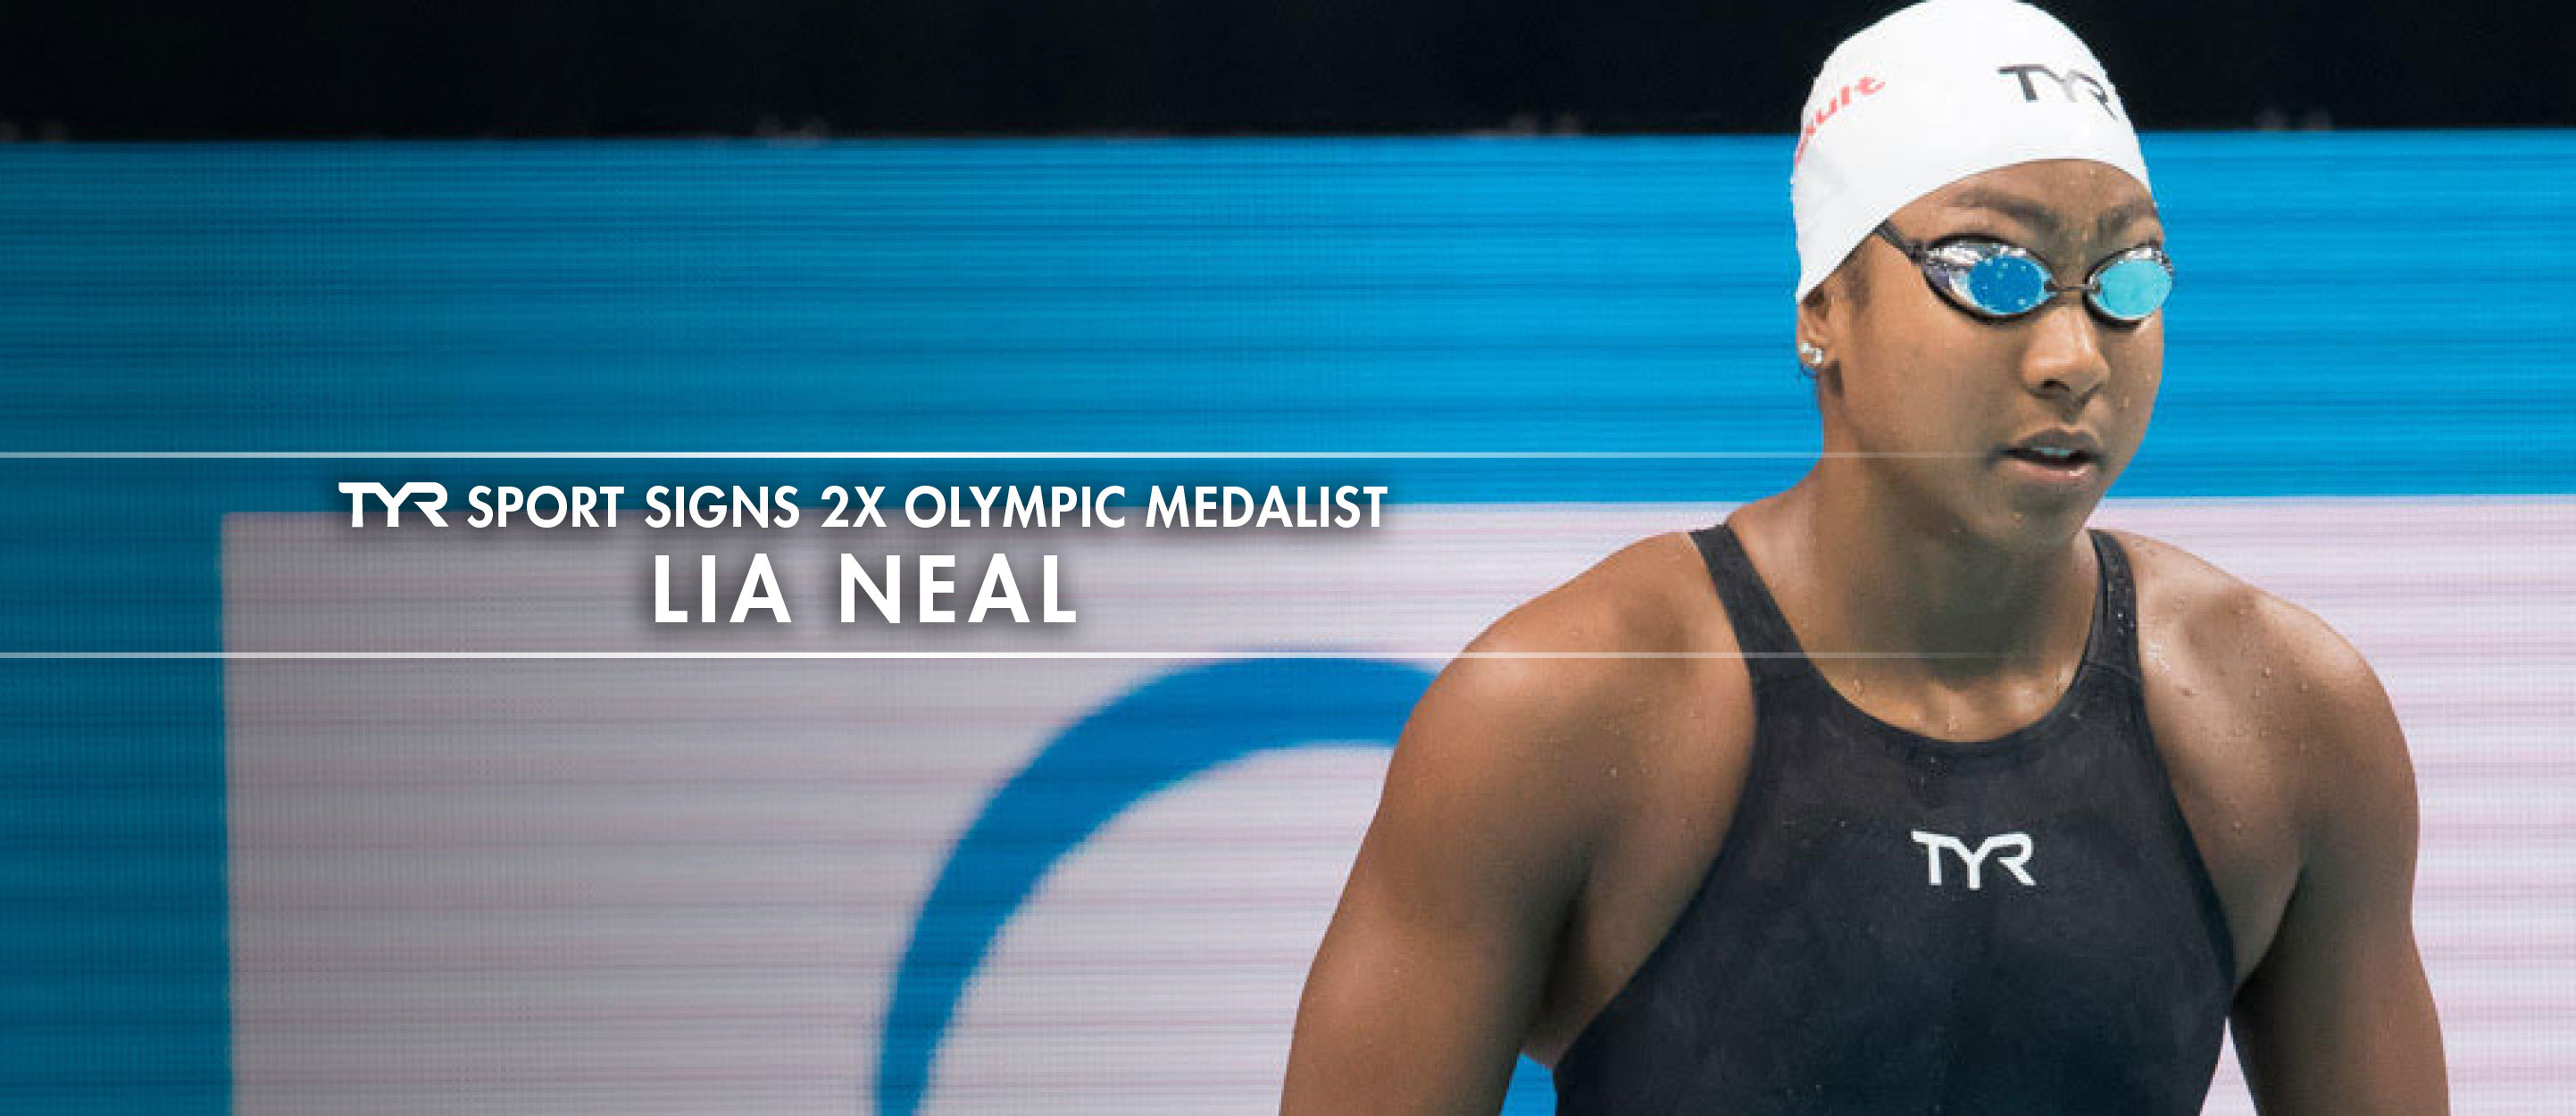 TYR SPORT SIGNS 2X OLYMPIC MEDALIST LIA NEAL